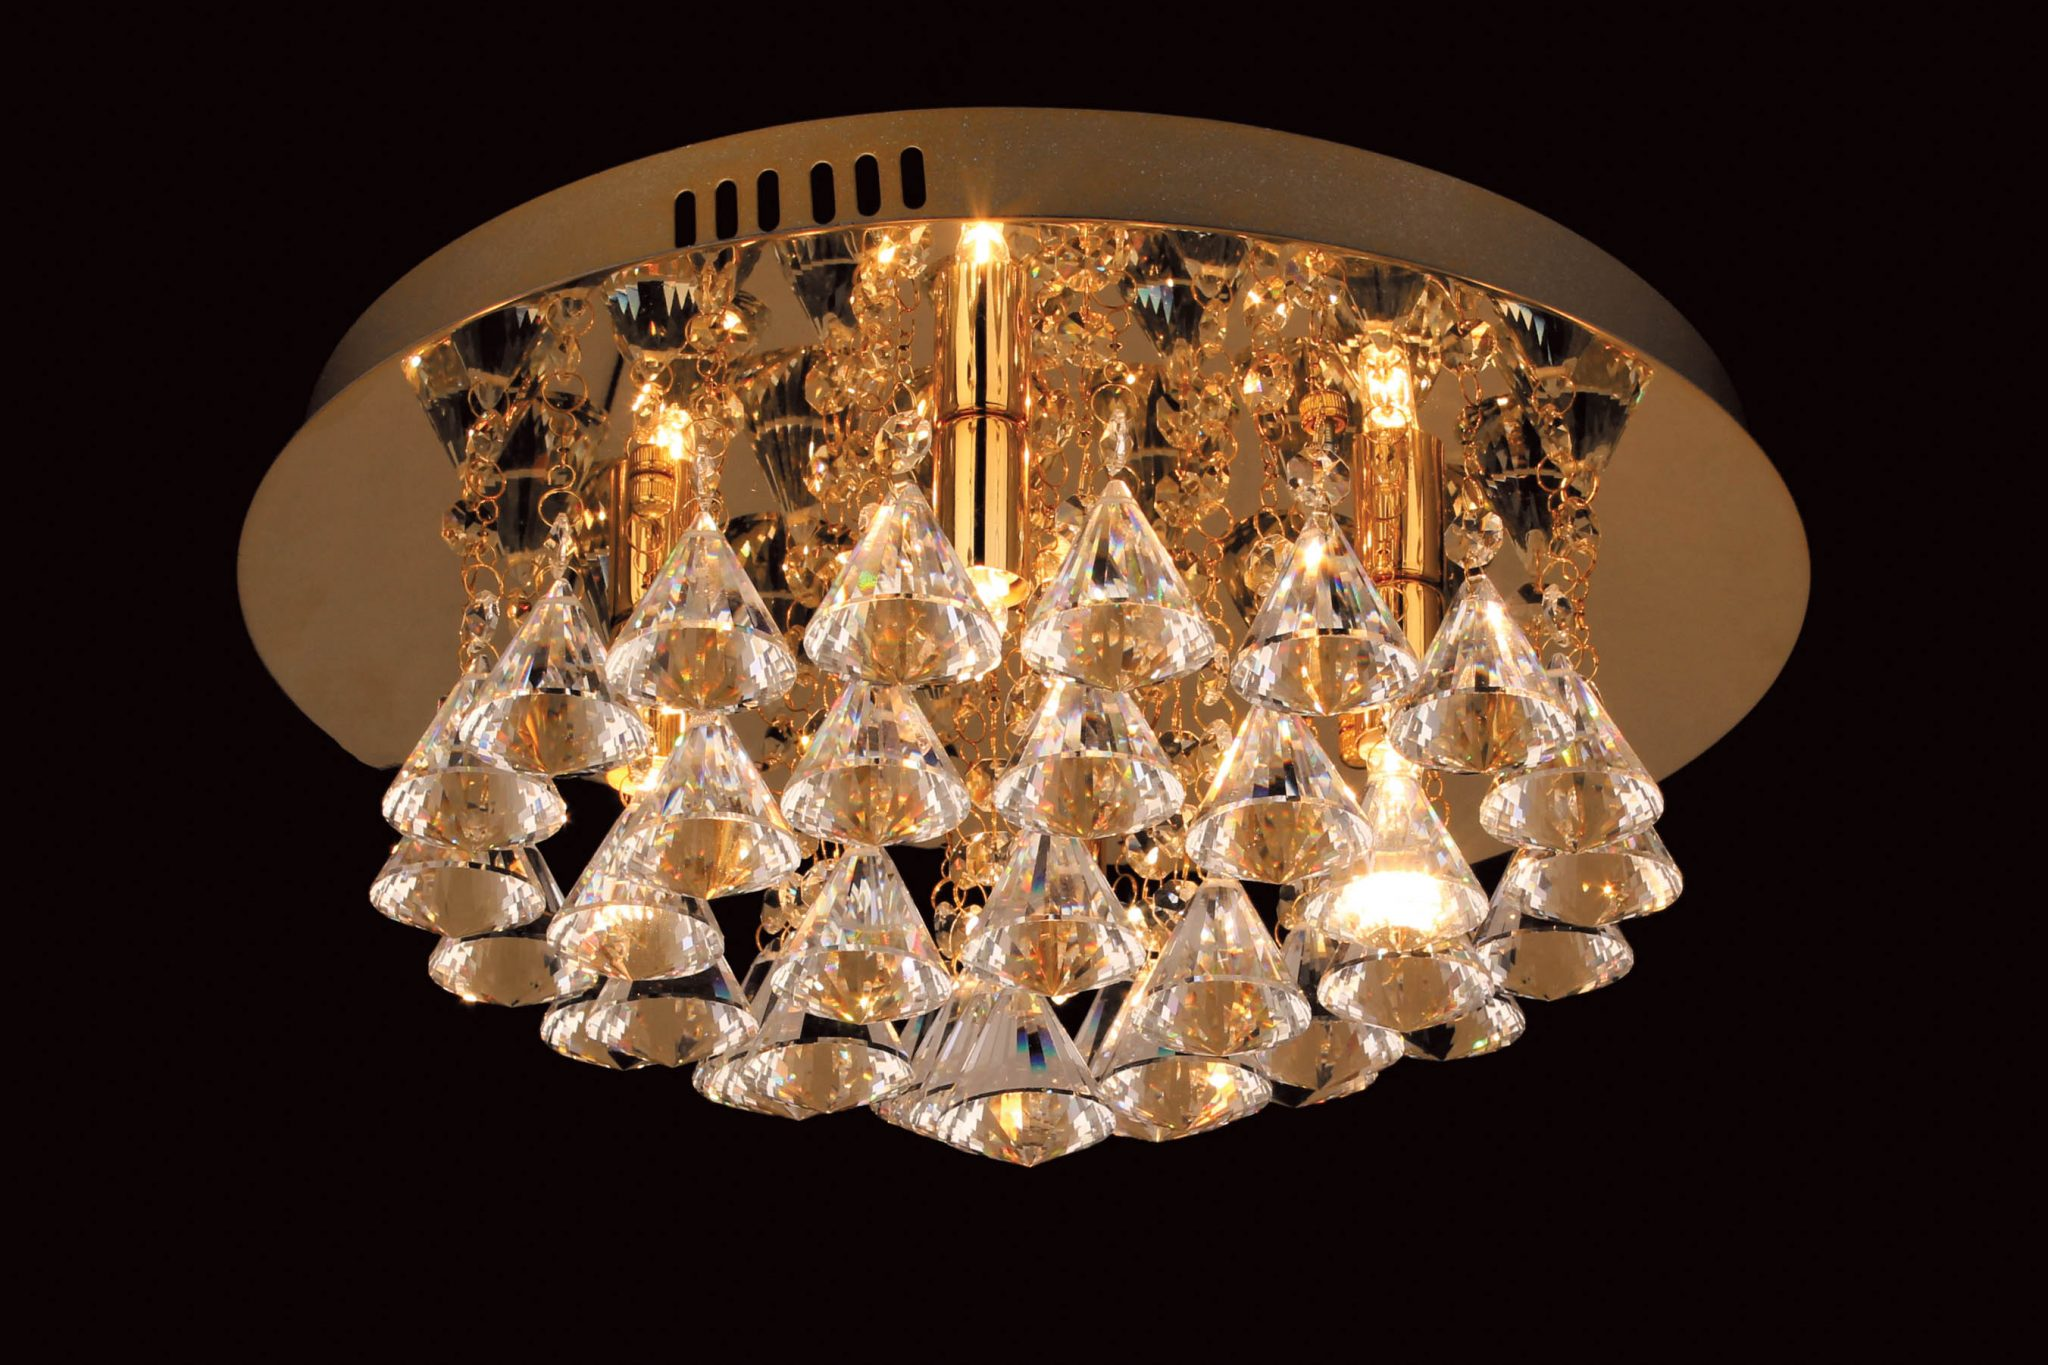 Impex CFH011025/04/G Parma 4 light Low Ceiling Fitting, Gold